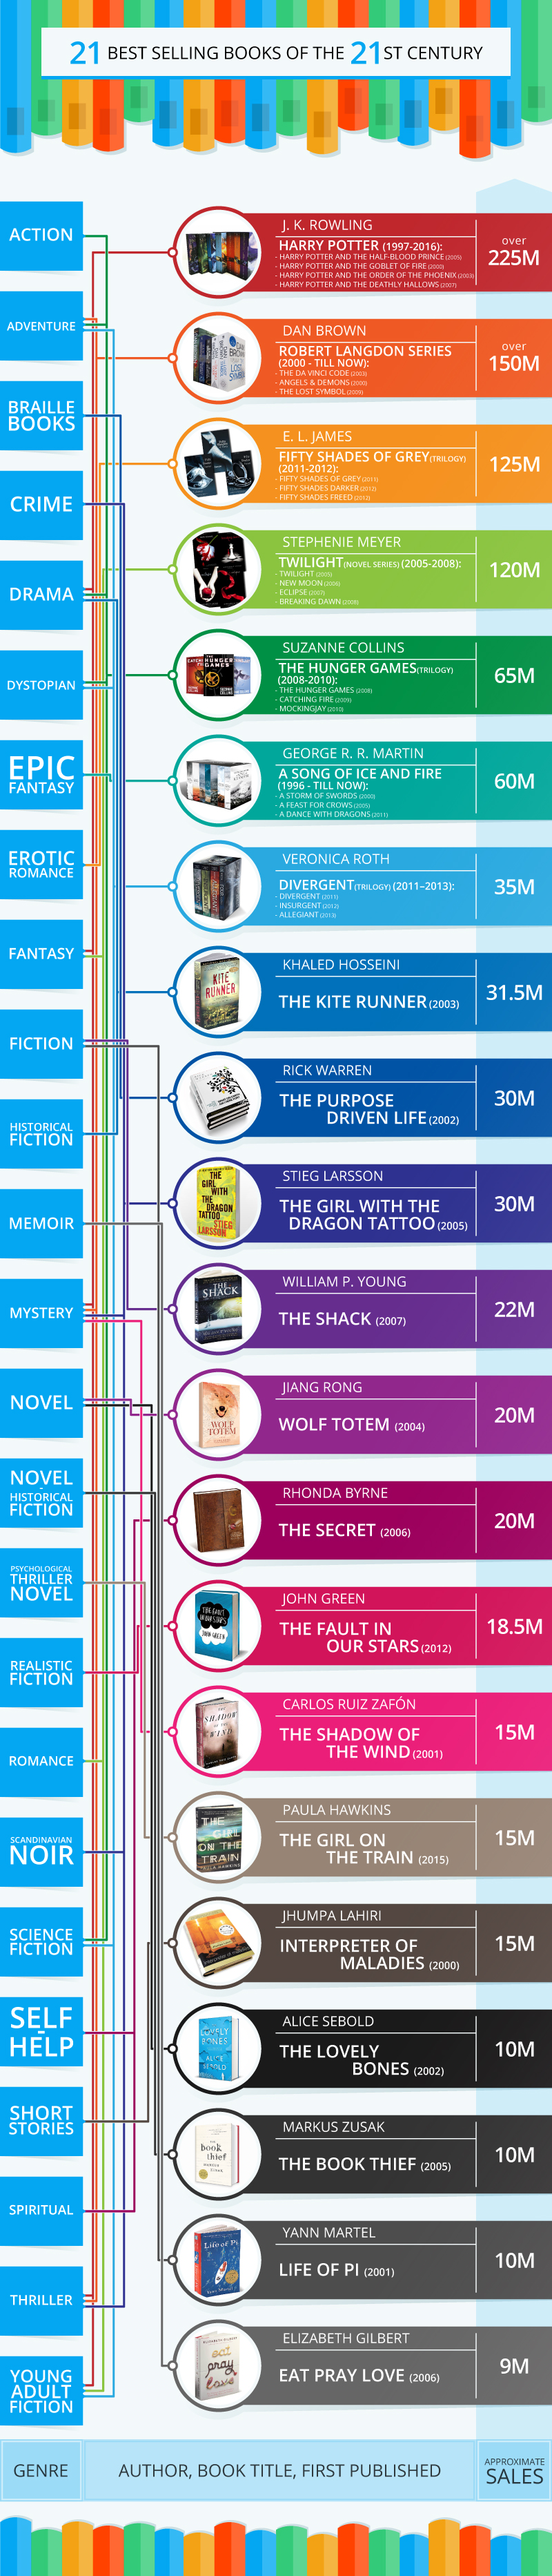 21 Most Sold Books of the 21st Century